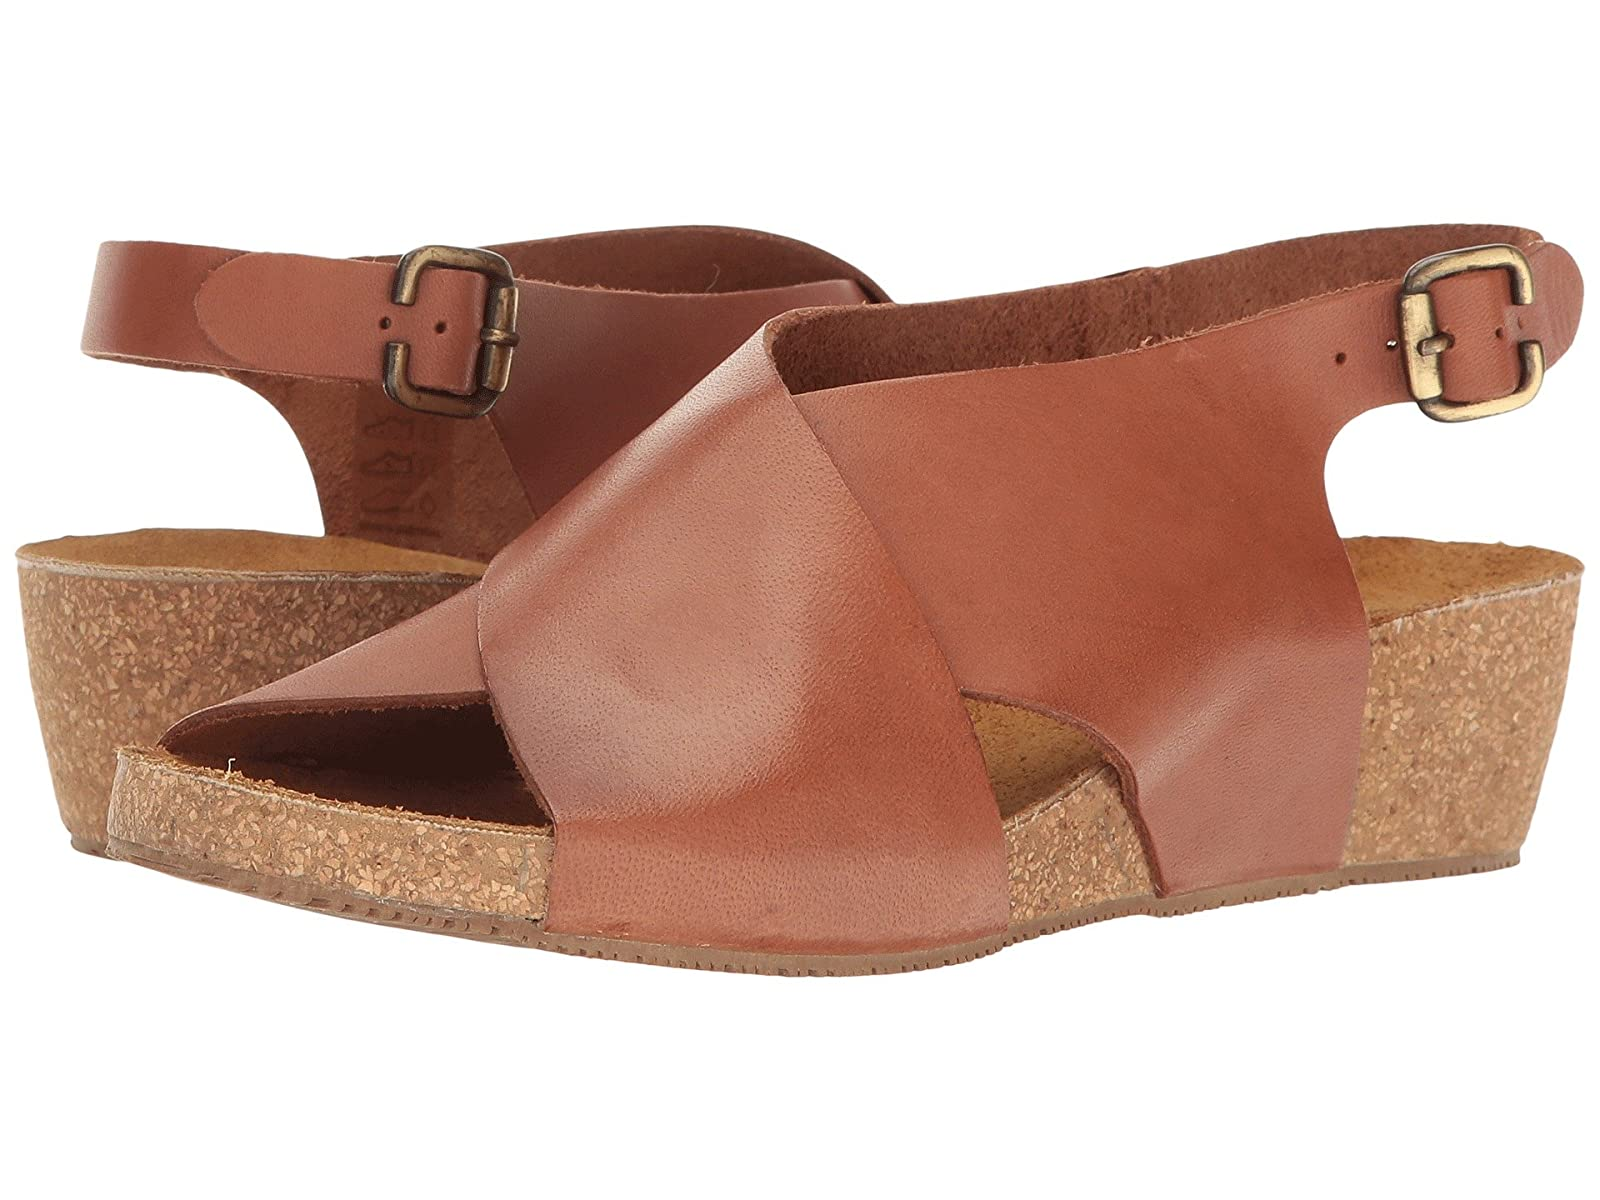 Eric Michael MarthaAtmospheric grades have affordable shoes